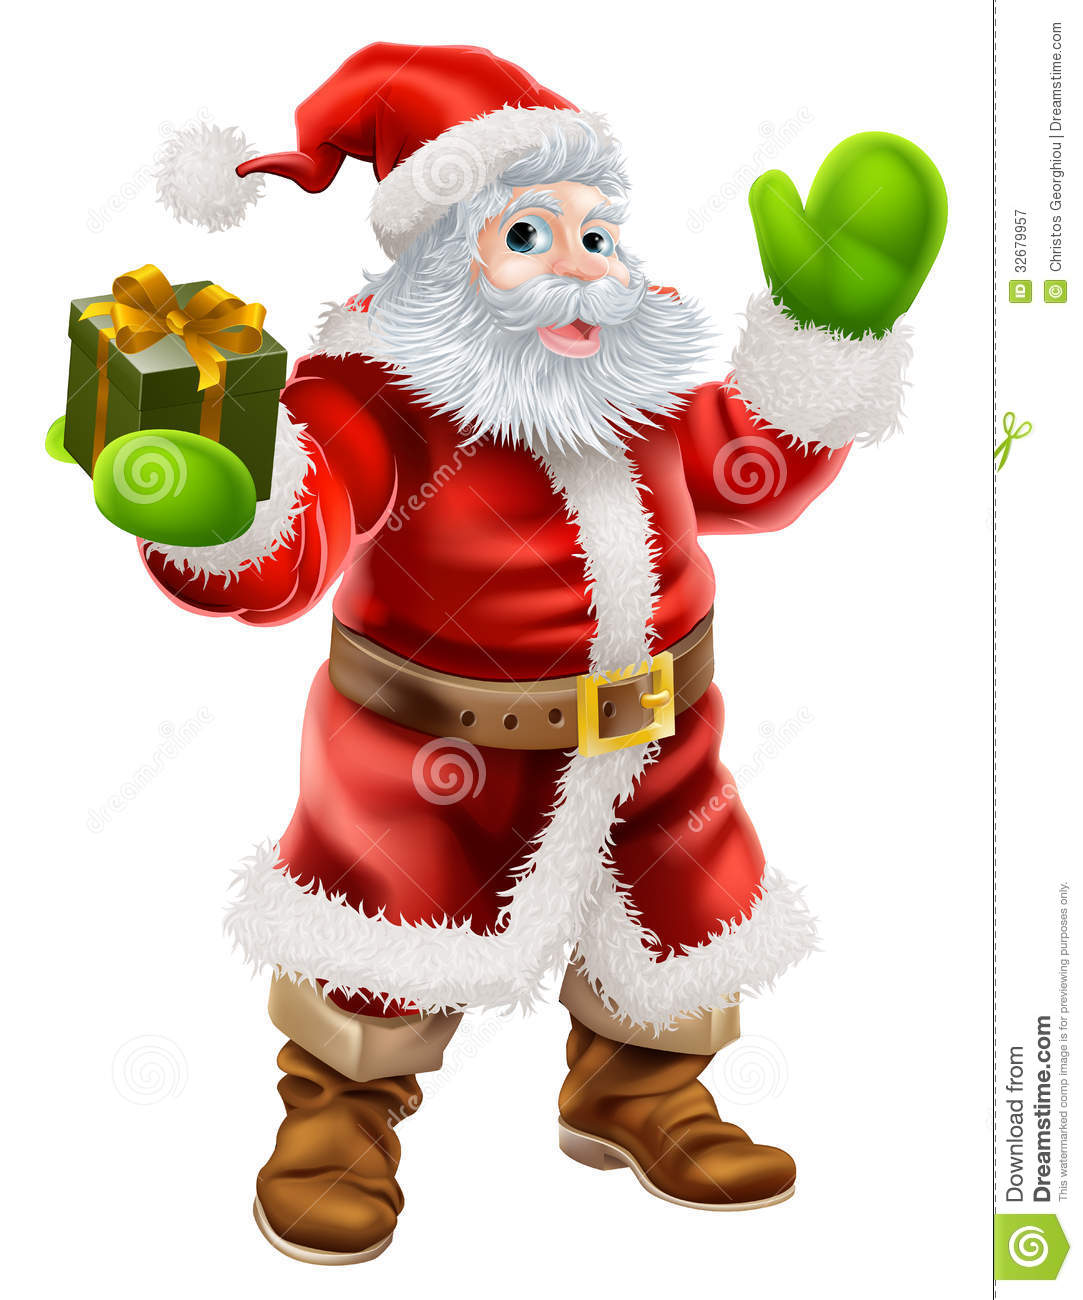 Cartoon santa claus royalty free stock photography image